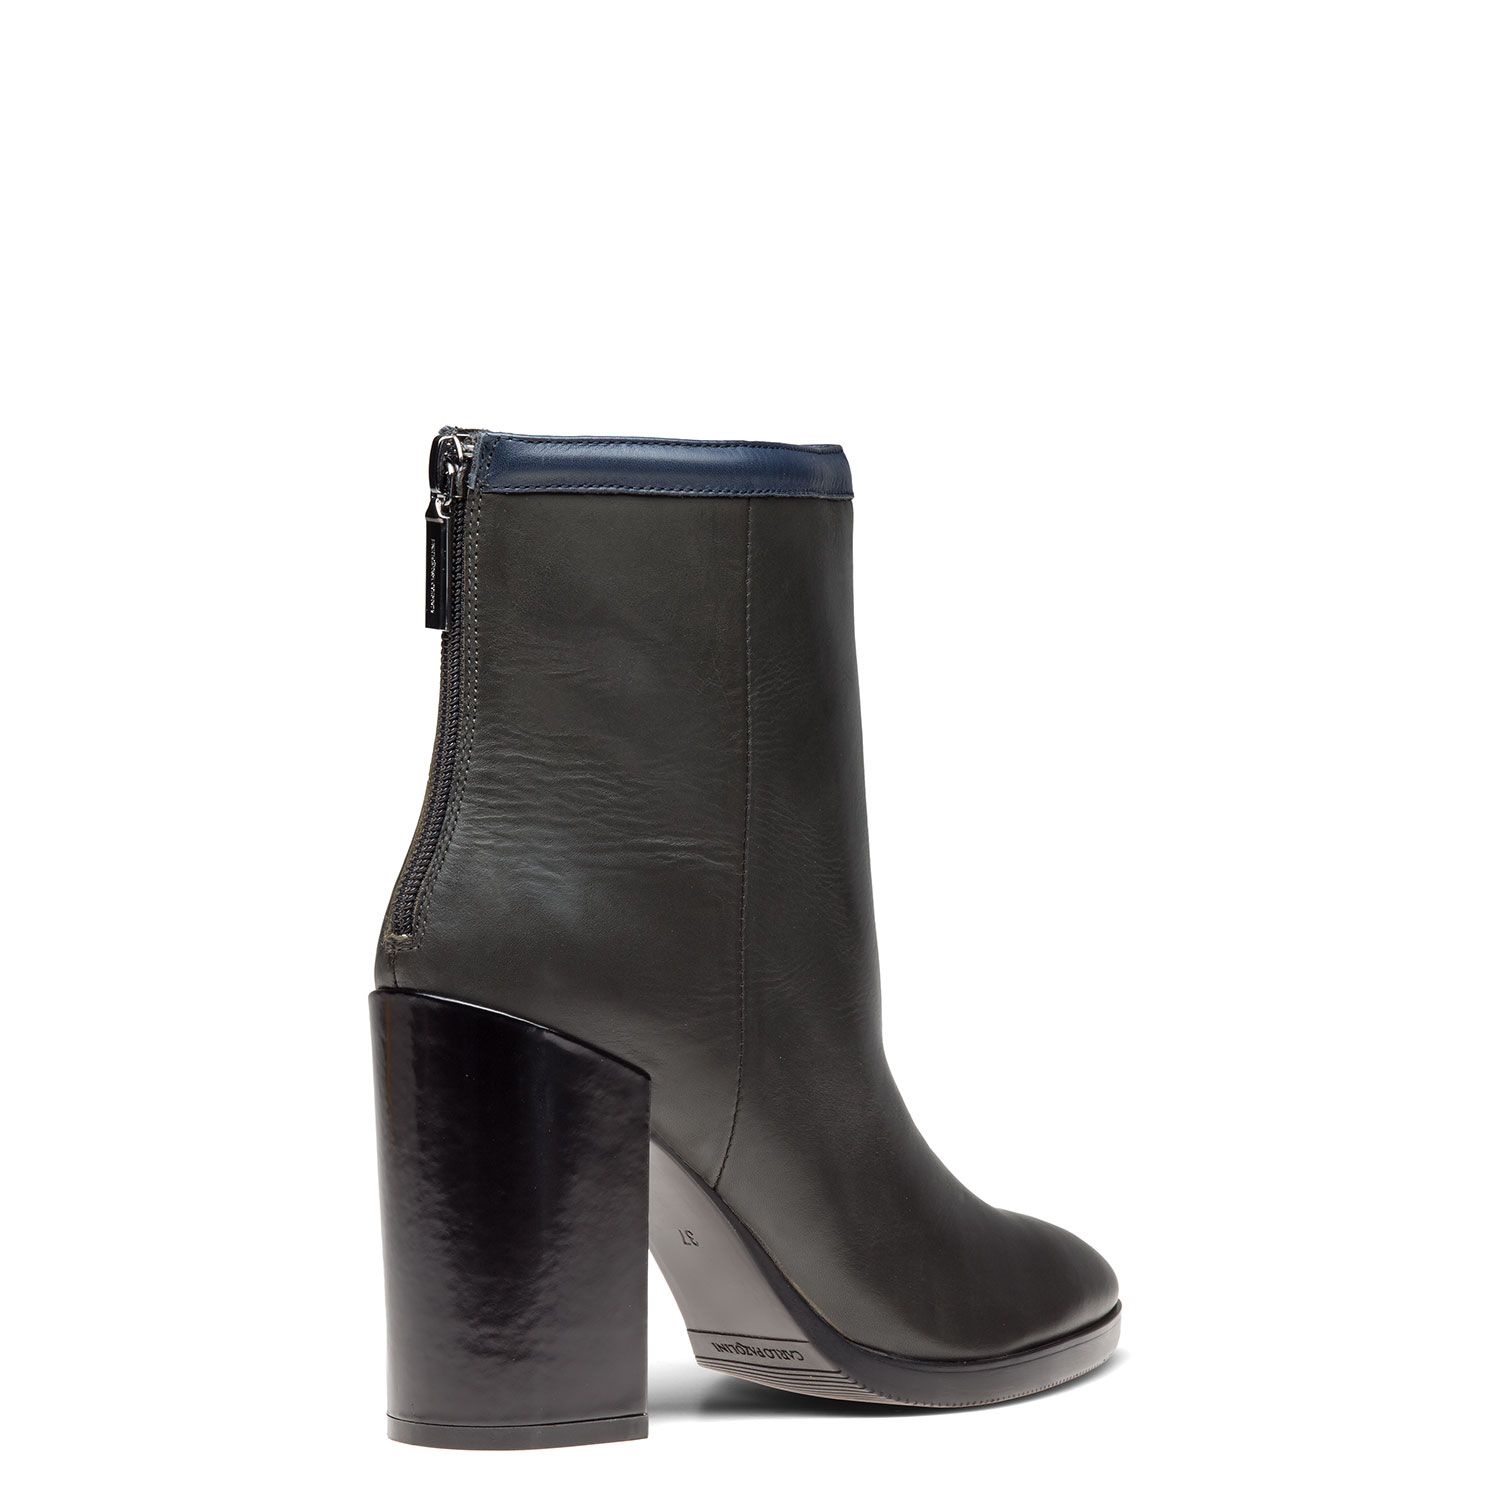 Women's cold weather ankle boots CARLO PAZOLINI FL-DEY2-14